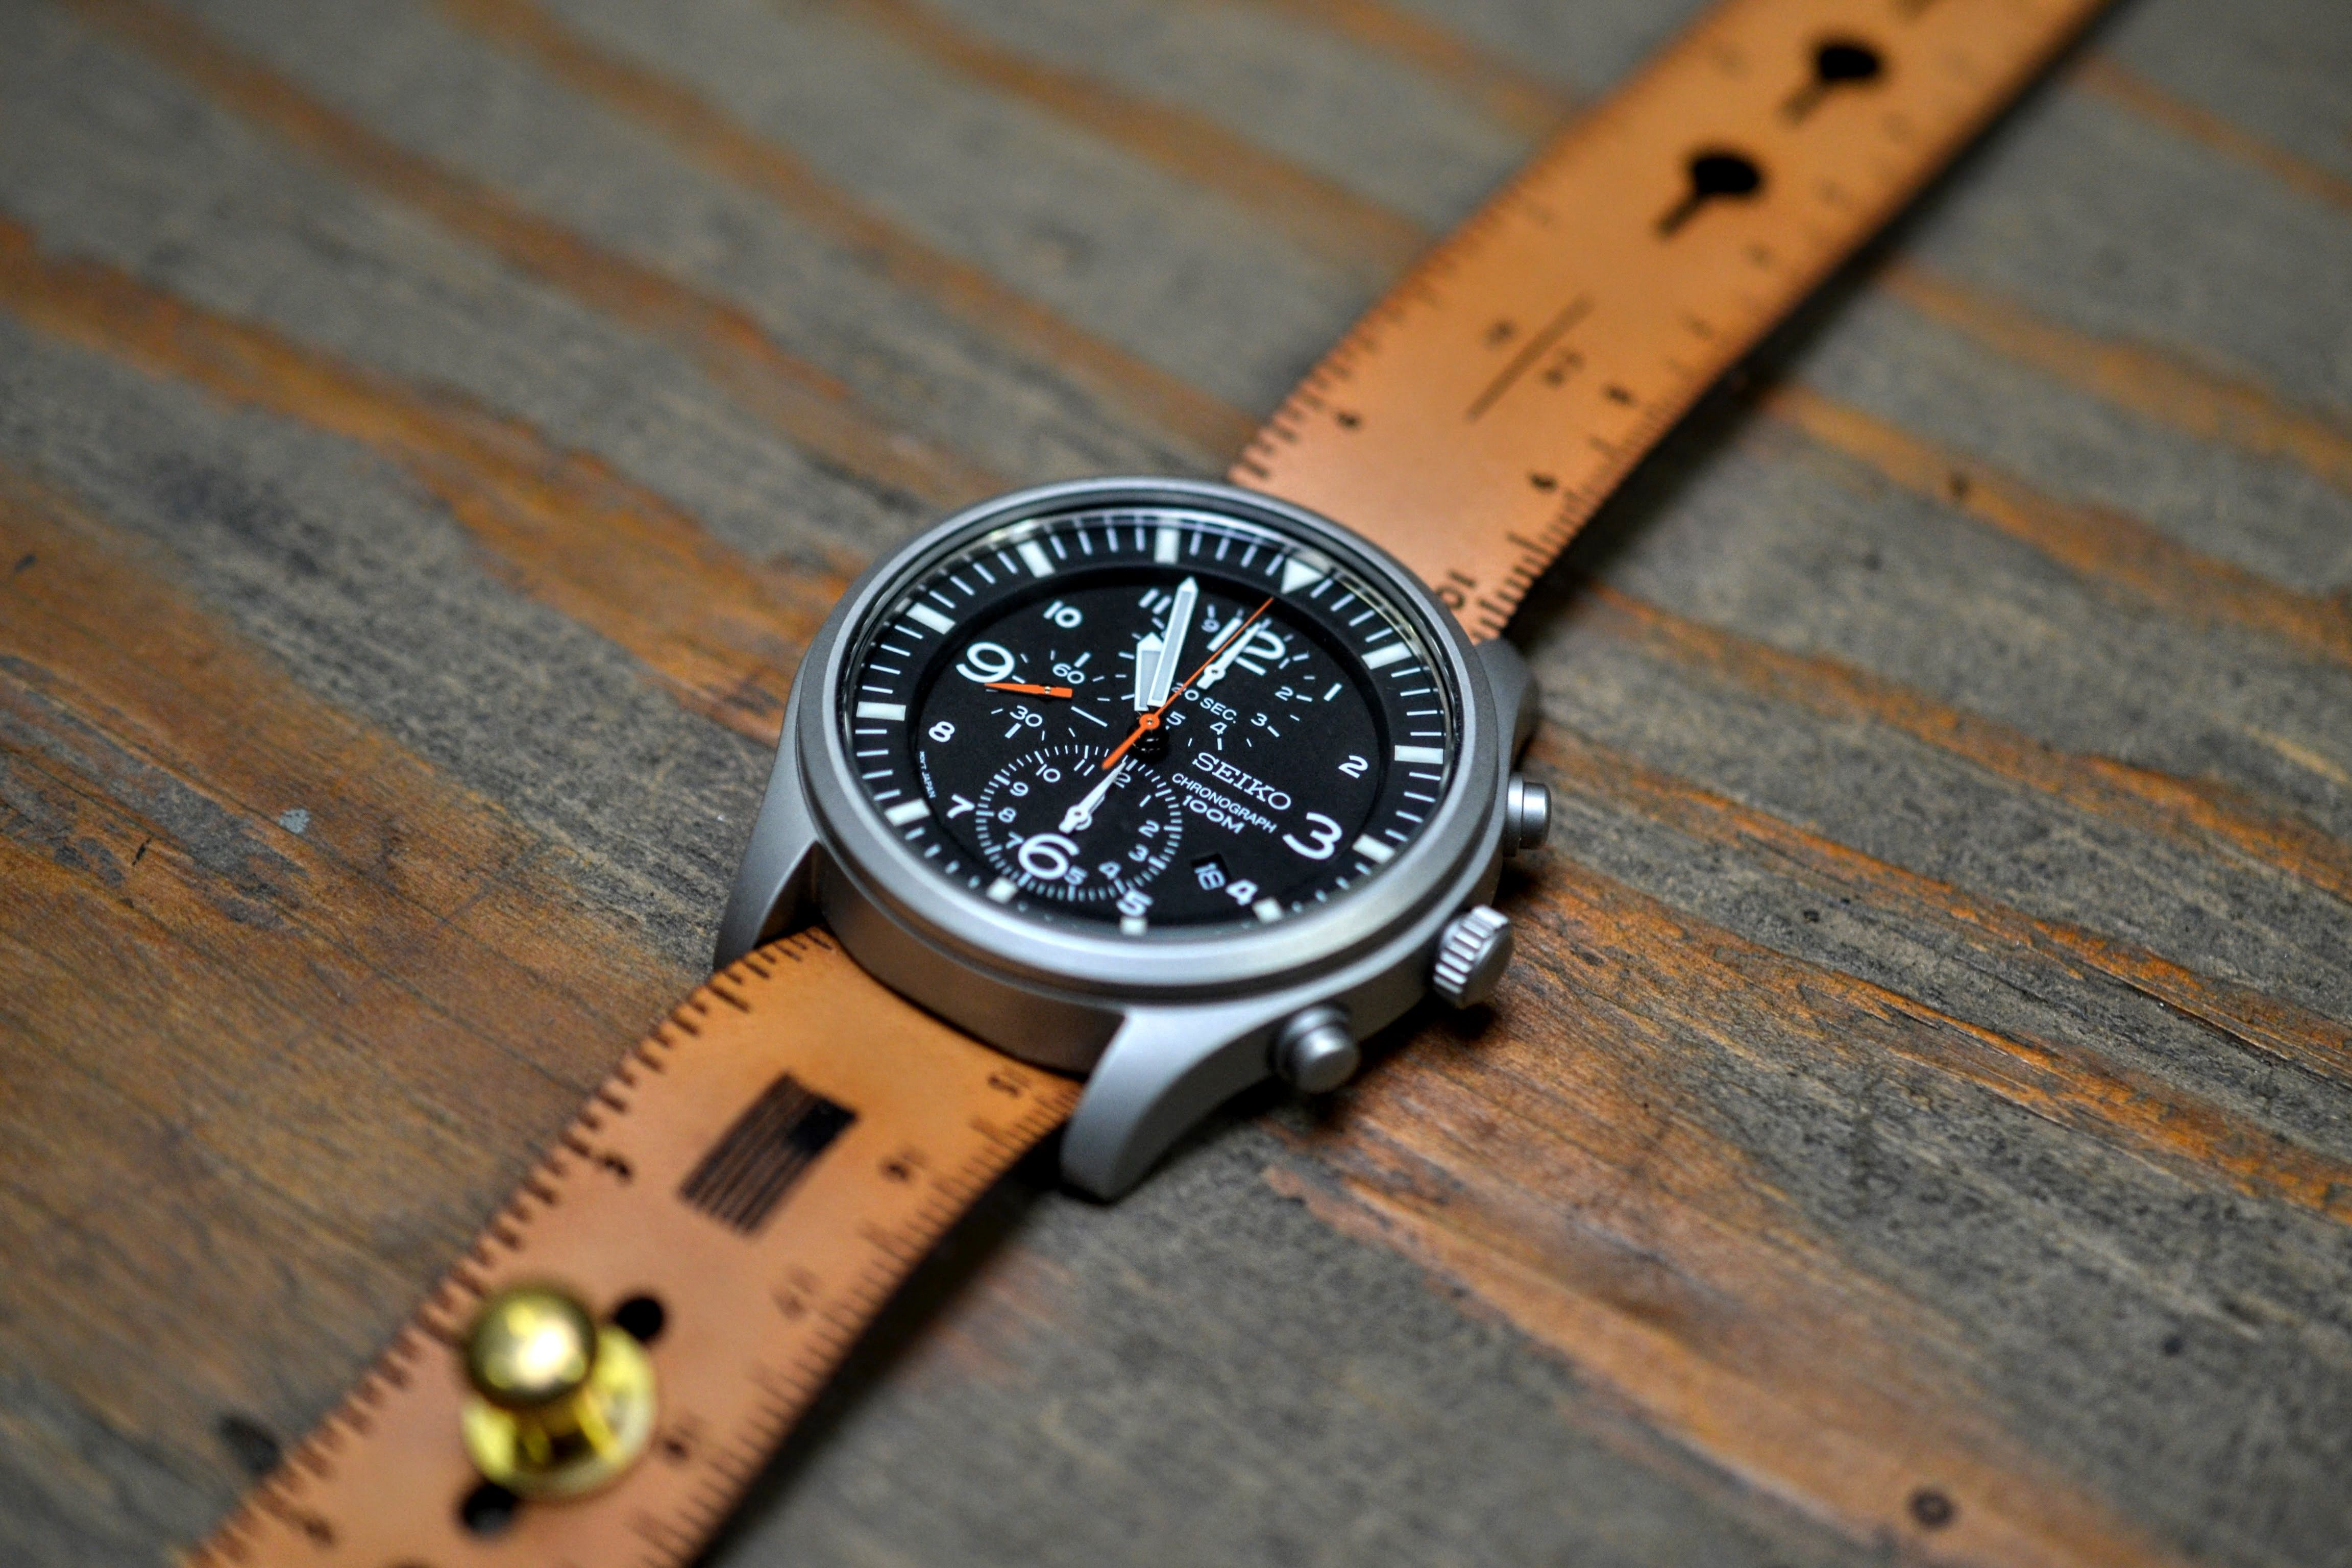 I Made A Nifty Ruler Watch Strap Imgur Watch Strap Design